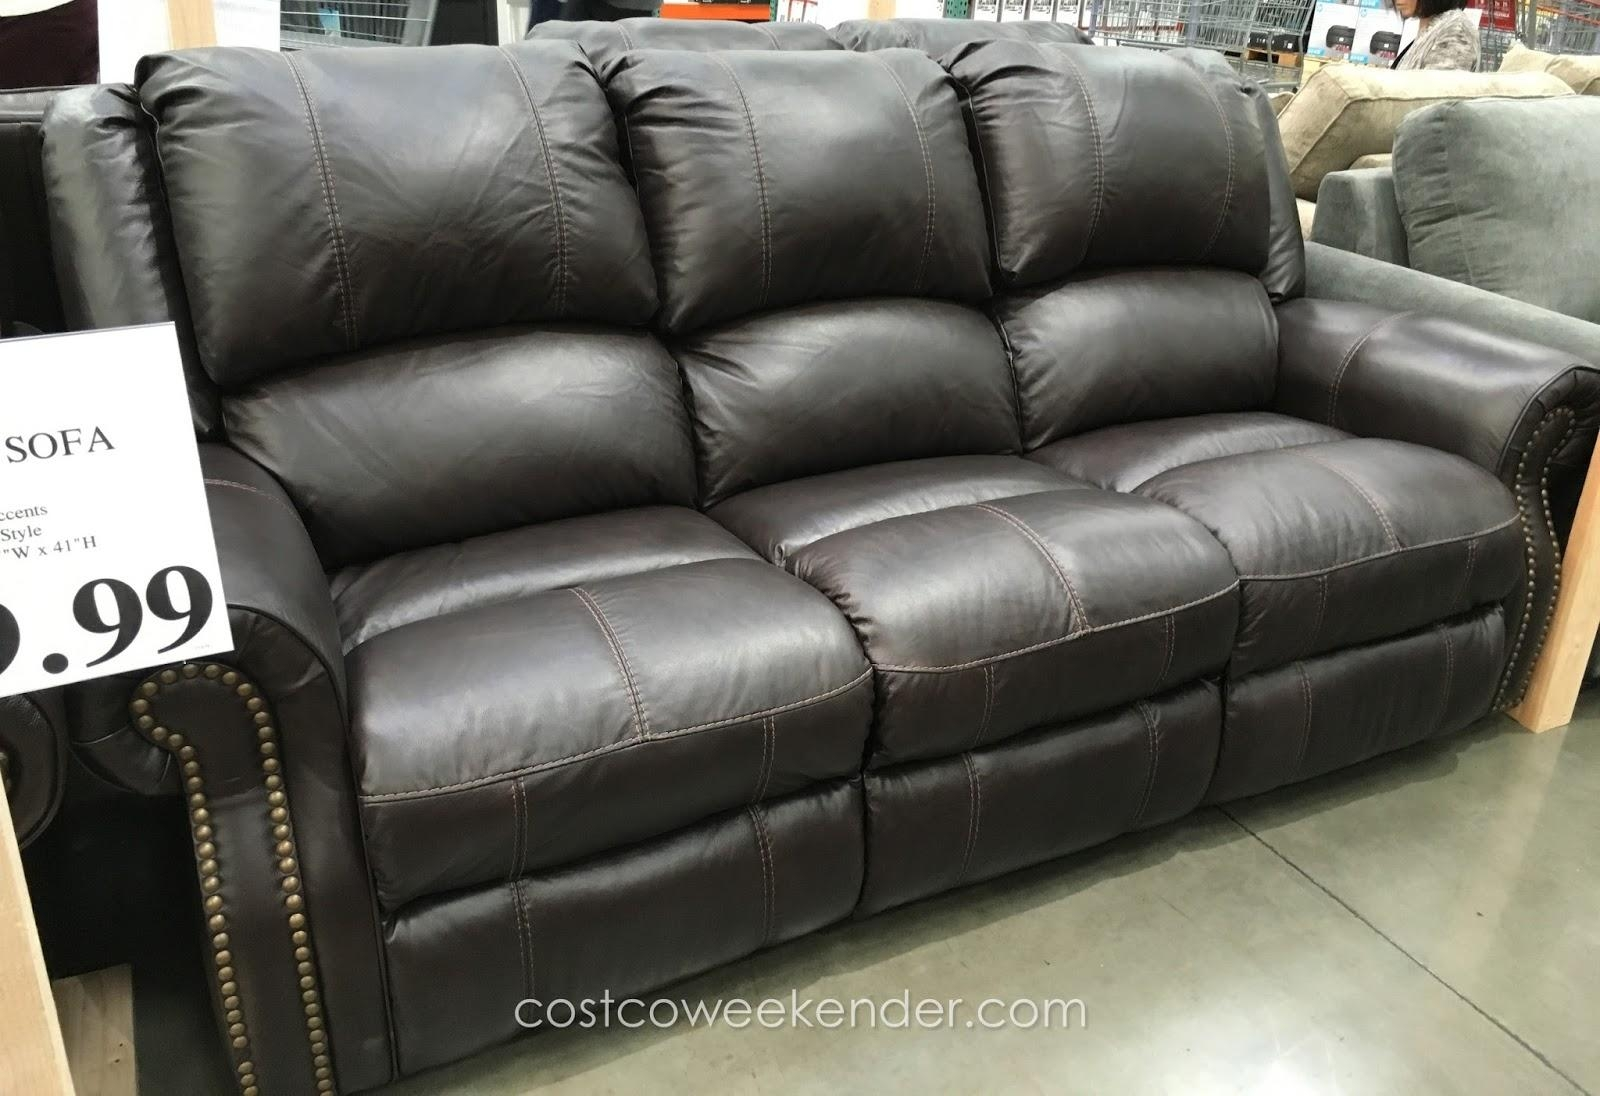 Featured Image of Berkline Leather Recliner Sofas